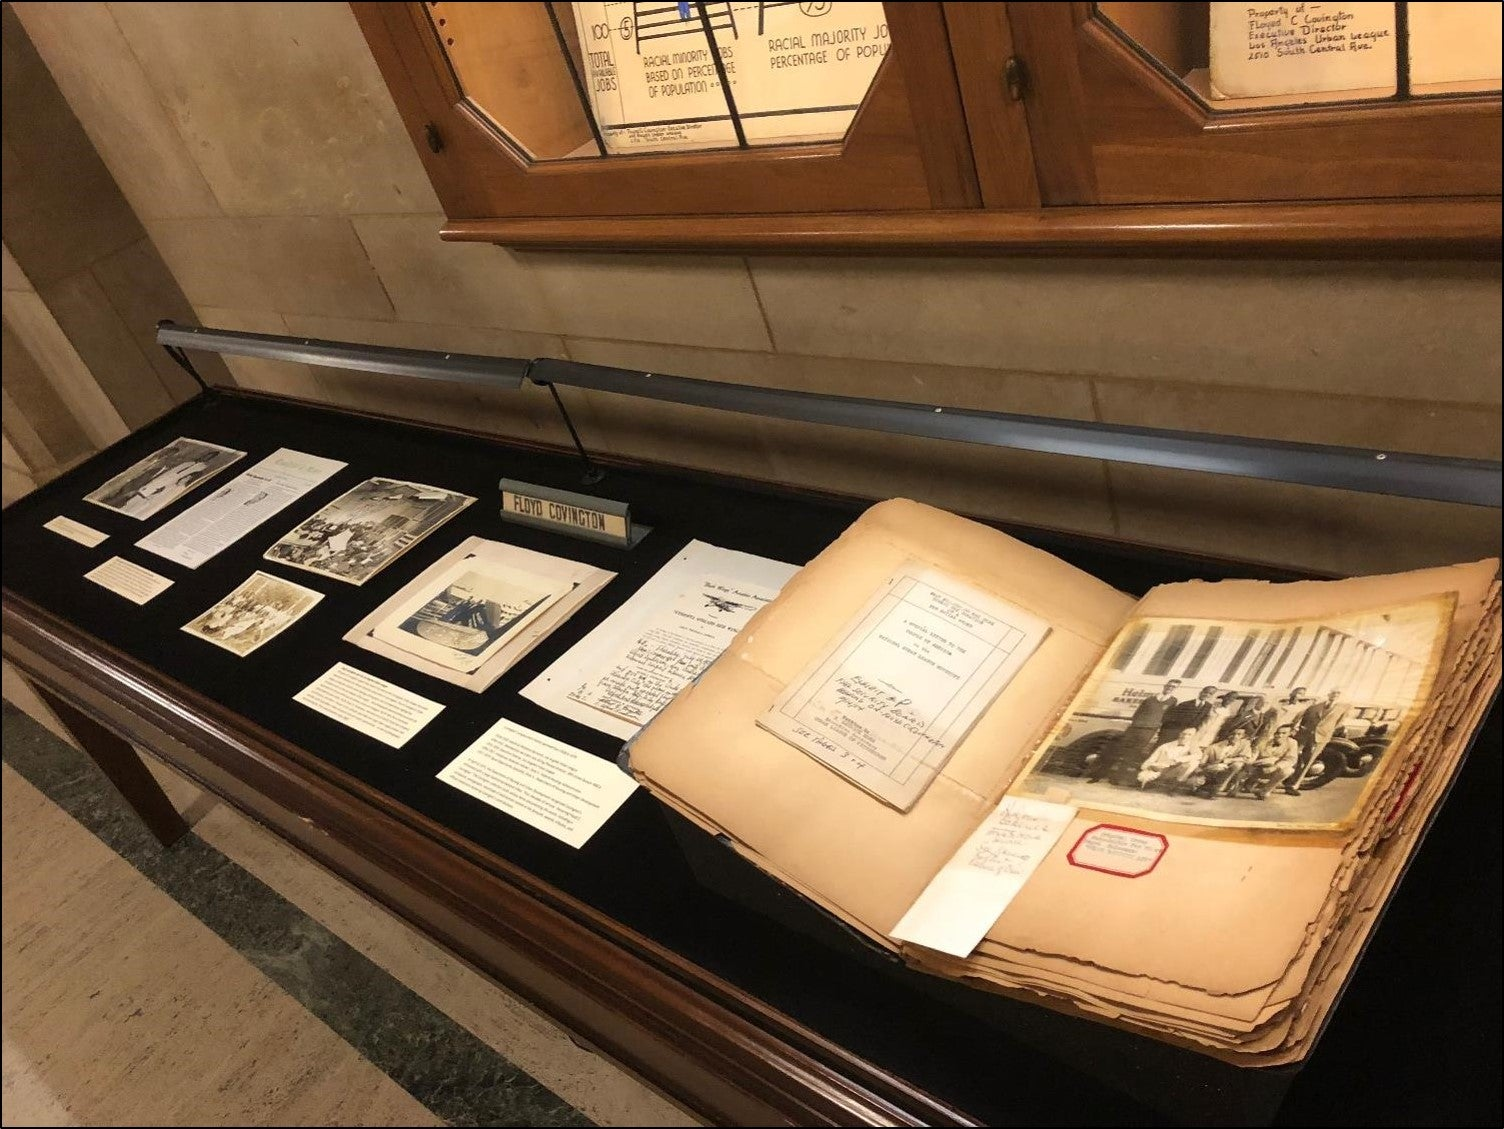 Floyd C. Covington papers - lobby left display case